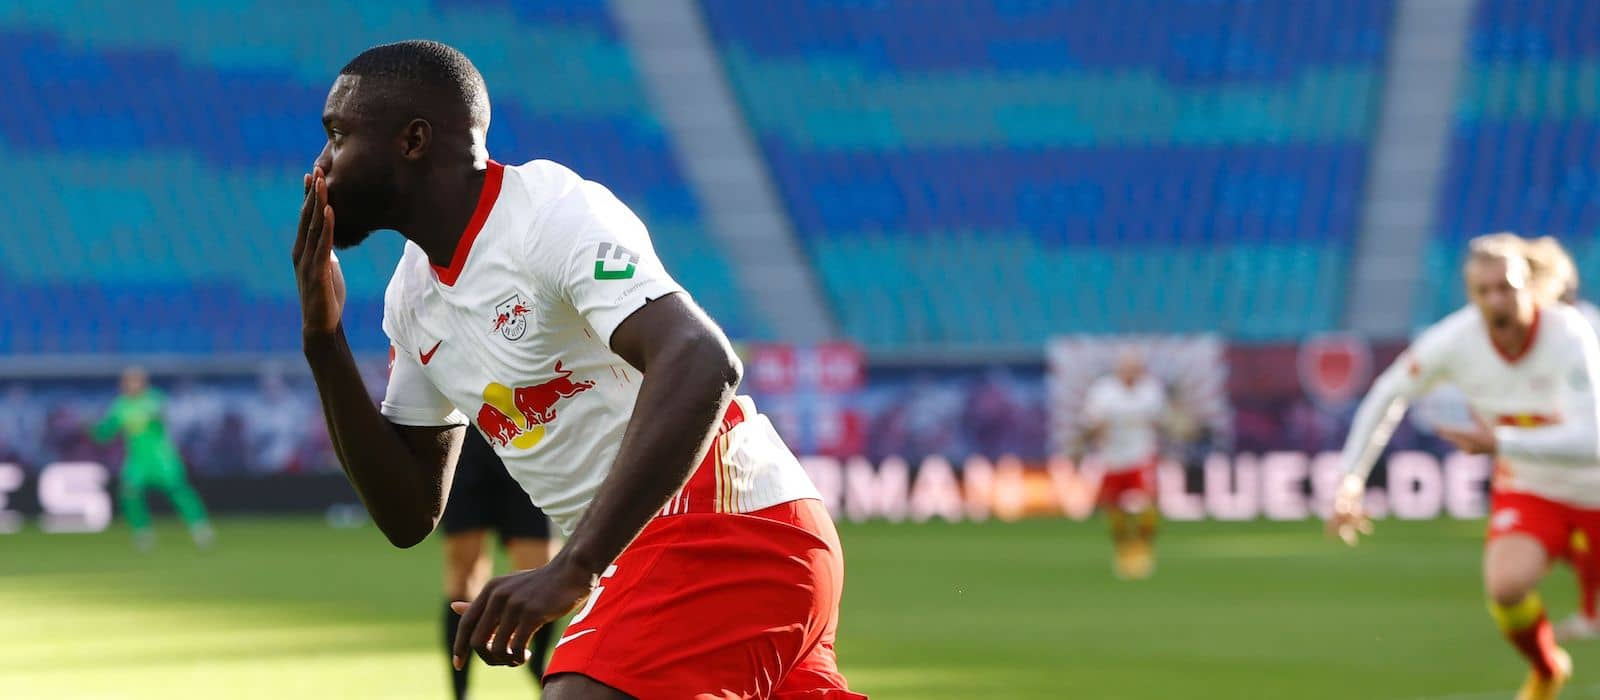 Man United may need to accelerate Dayot Upamecano chase to ward off rivals